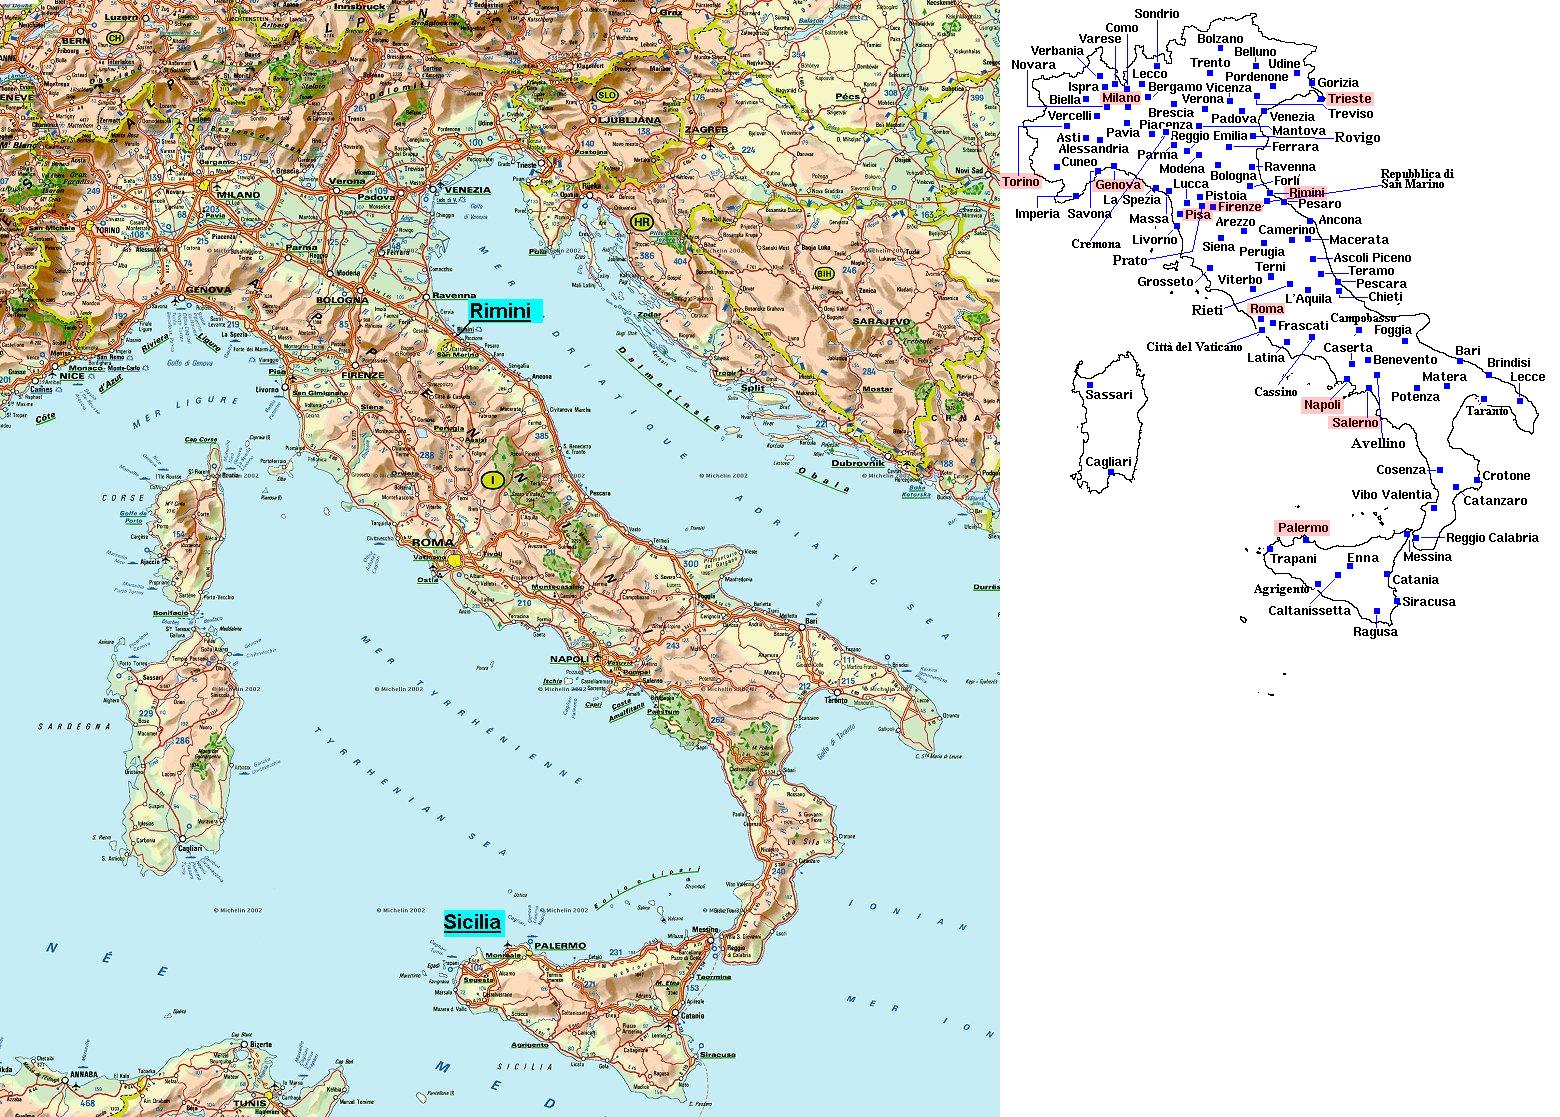 Map Of Cities Italy.Maps Of Italy Map Library Maps Of The World